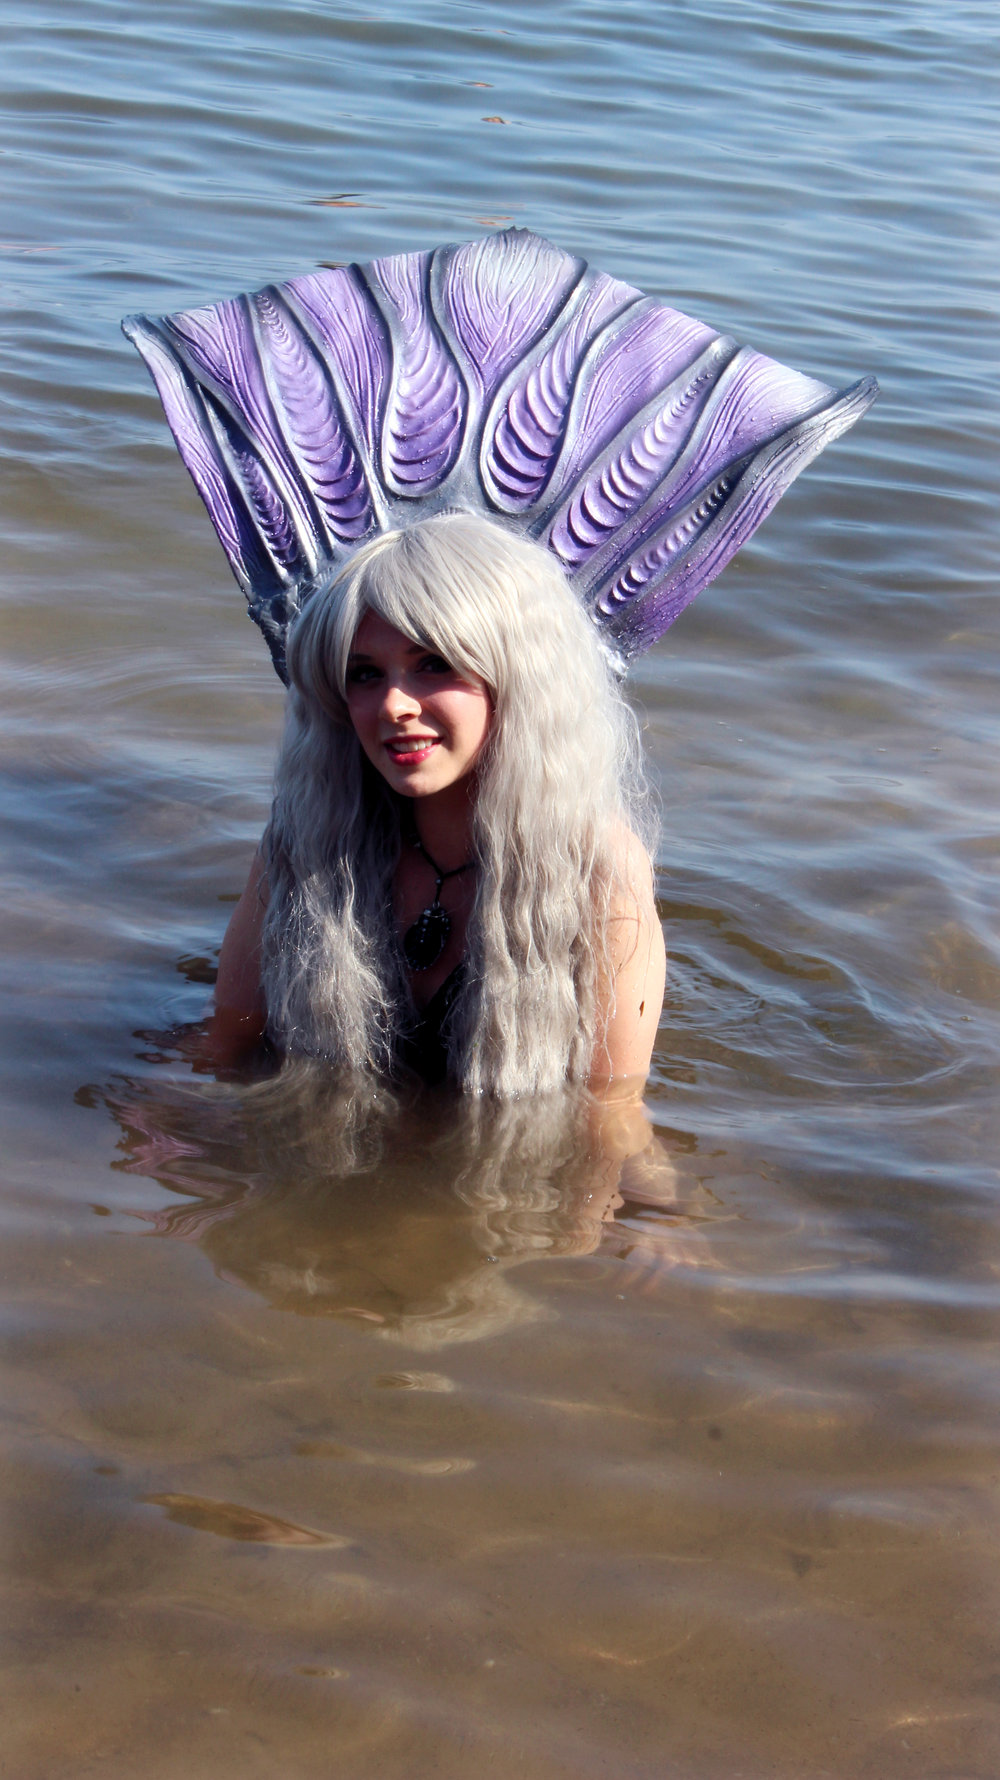 Mermaid Phantom, a real life Professional Mermaid, is holding her pretty tail high above her head. She is smiling after having had a long day of play out in the sunny waters of Grand Traverse Bay, Michigan. You can learn more about meeting her at www.themagiccrafter.com